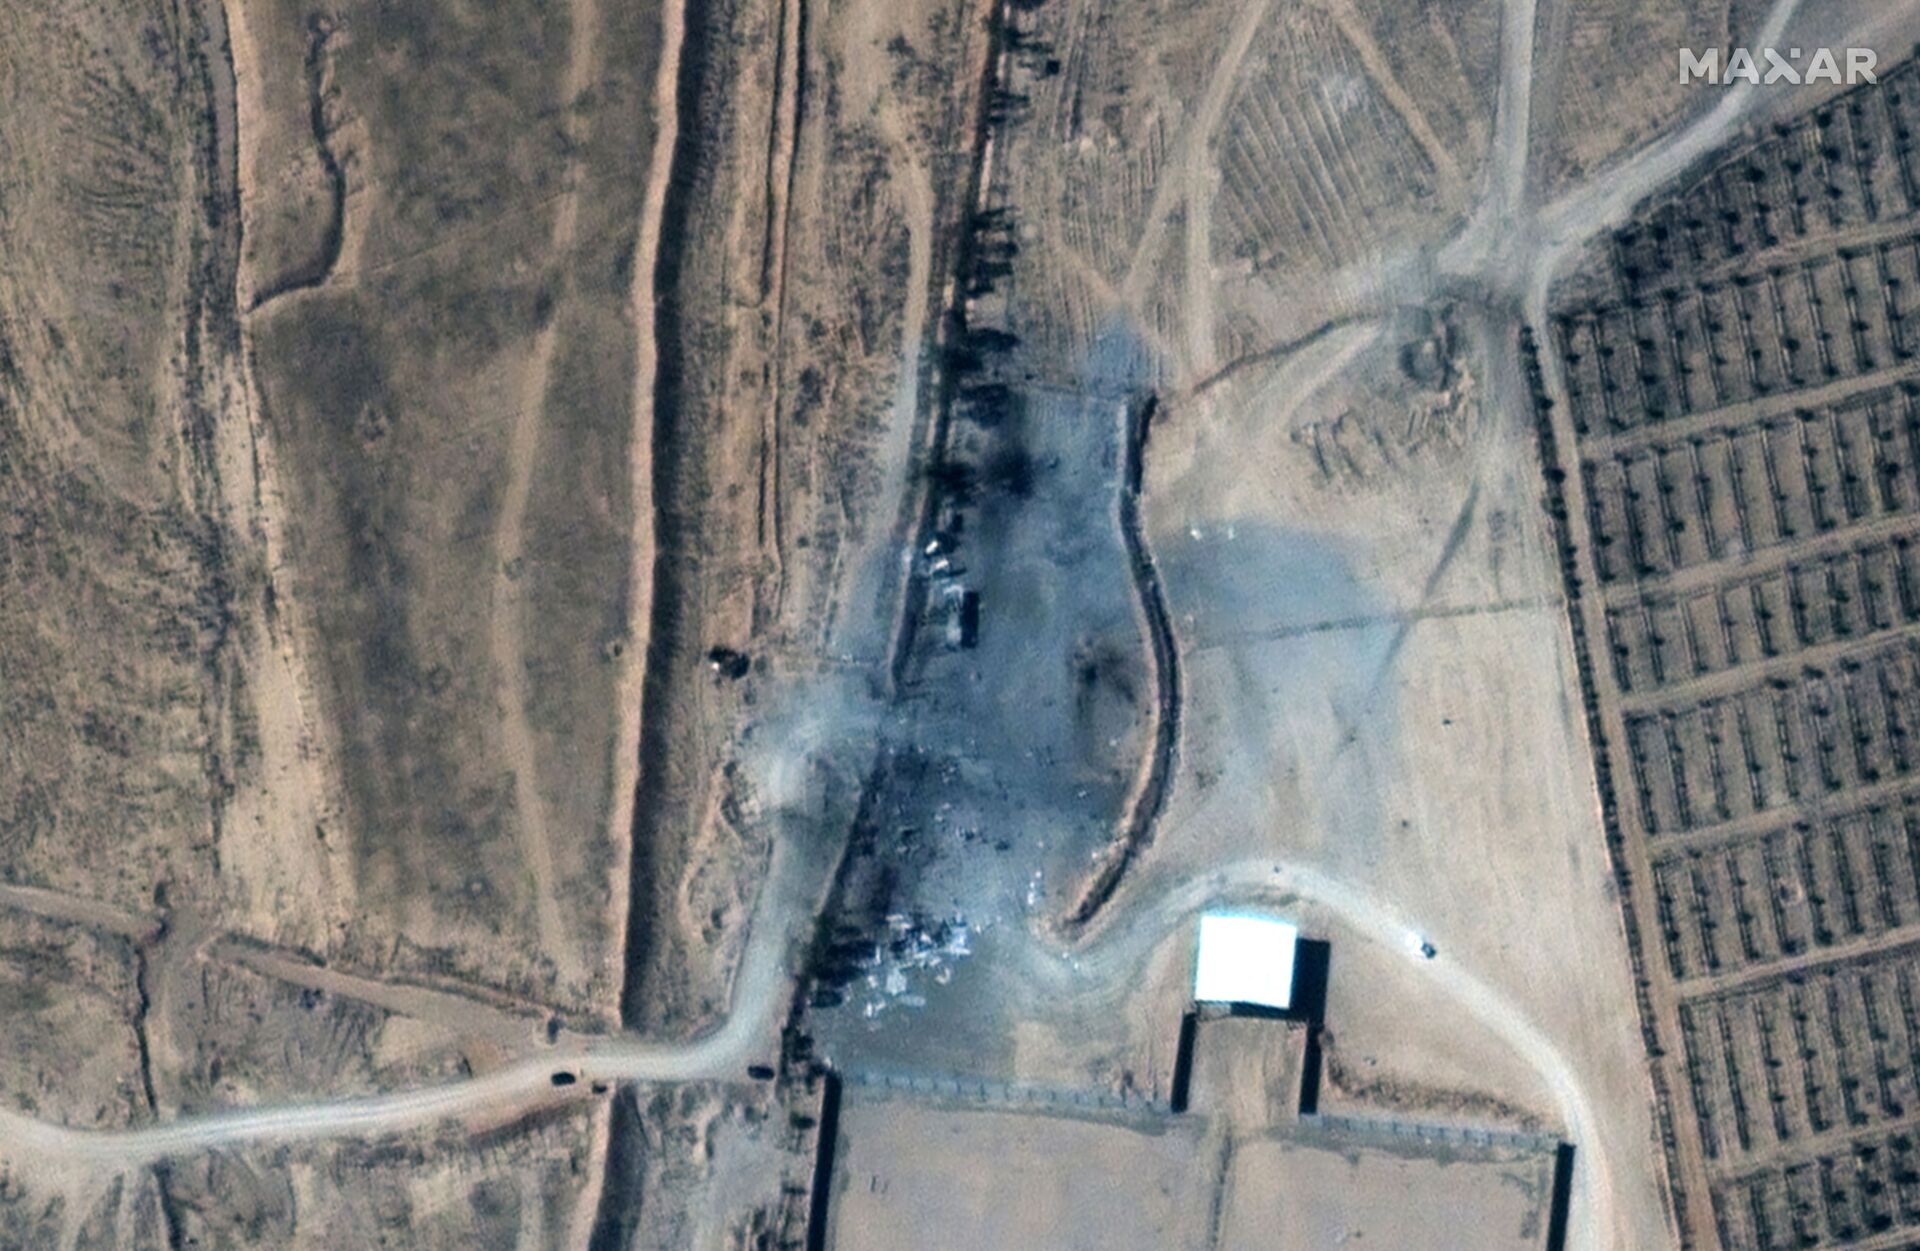 A close up view of destroyed buildings at an Iraq-Syria border crossing after airstrikes, seen in this February 26, 2021 handout satellite image provided by Maxar. - Sputnik International, 1920, 07.09.2021